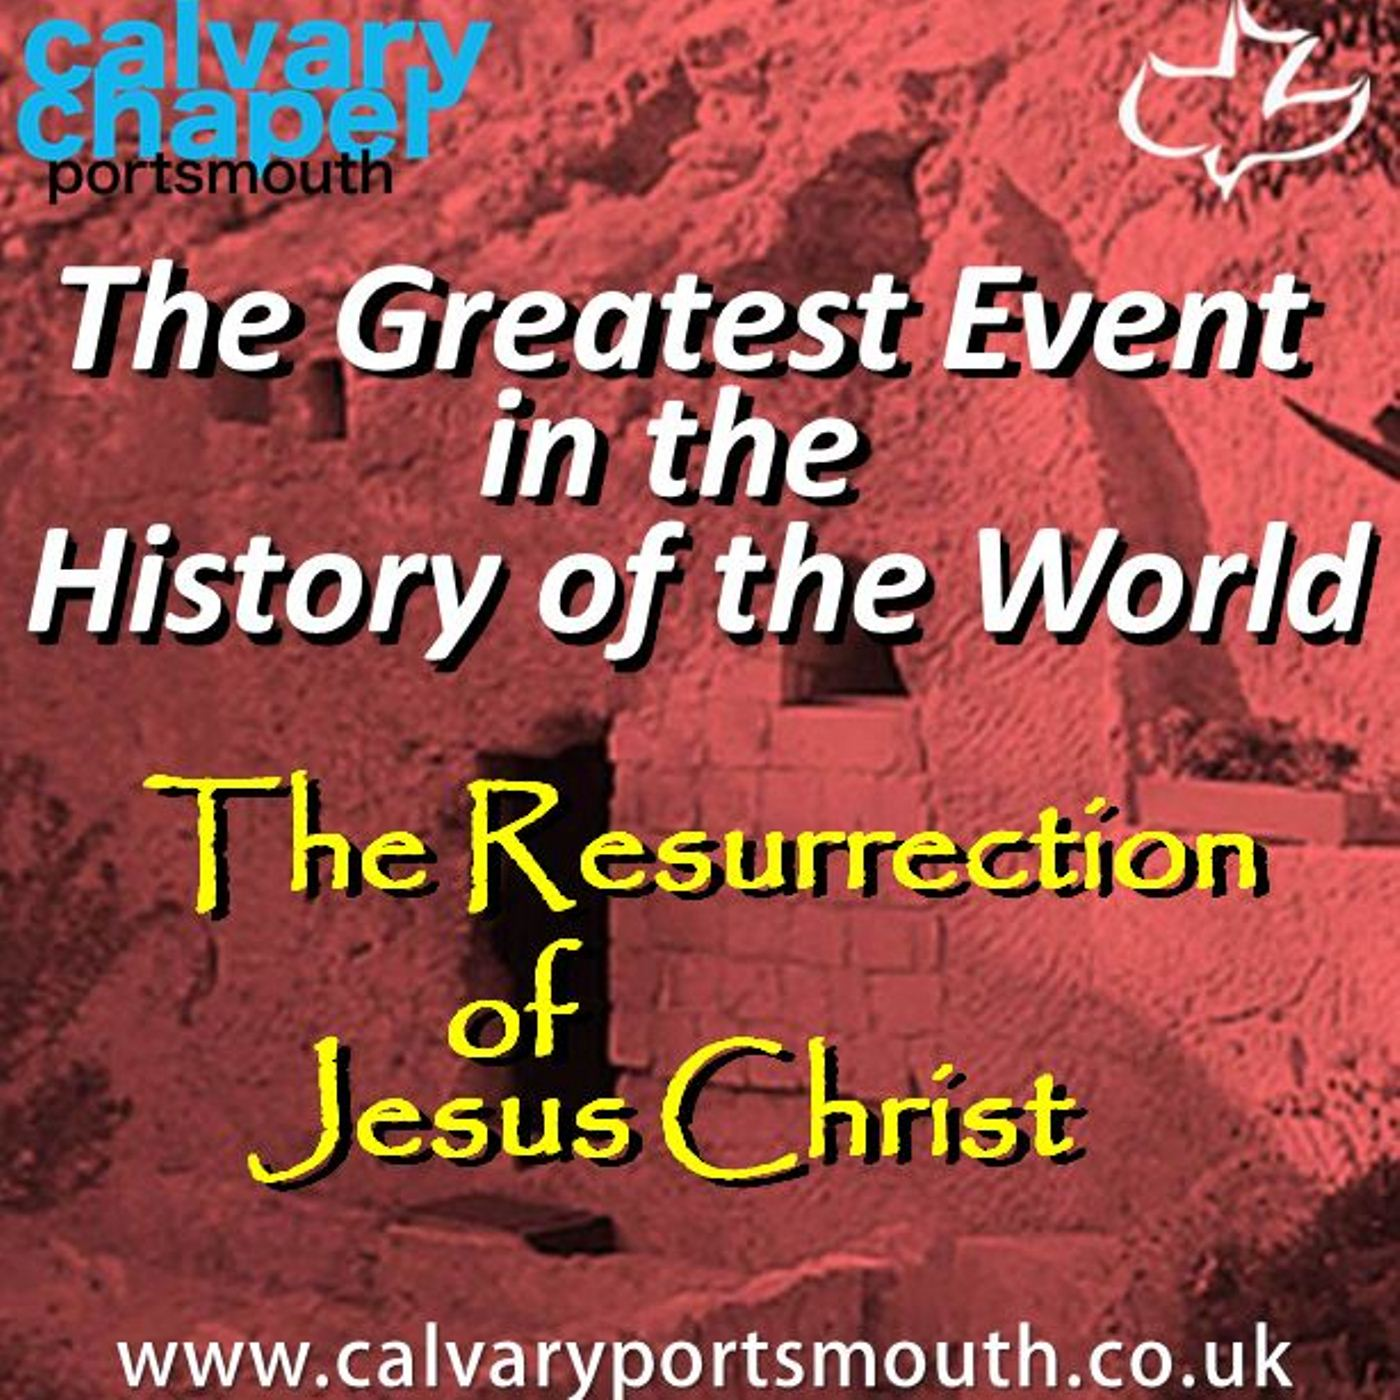 The Greatest Event in the History of the World - The Resurrection of Jesus Christ